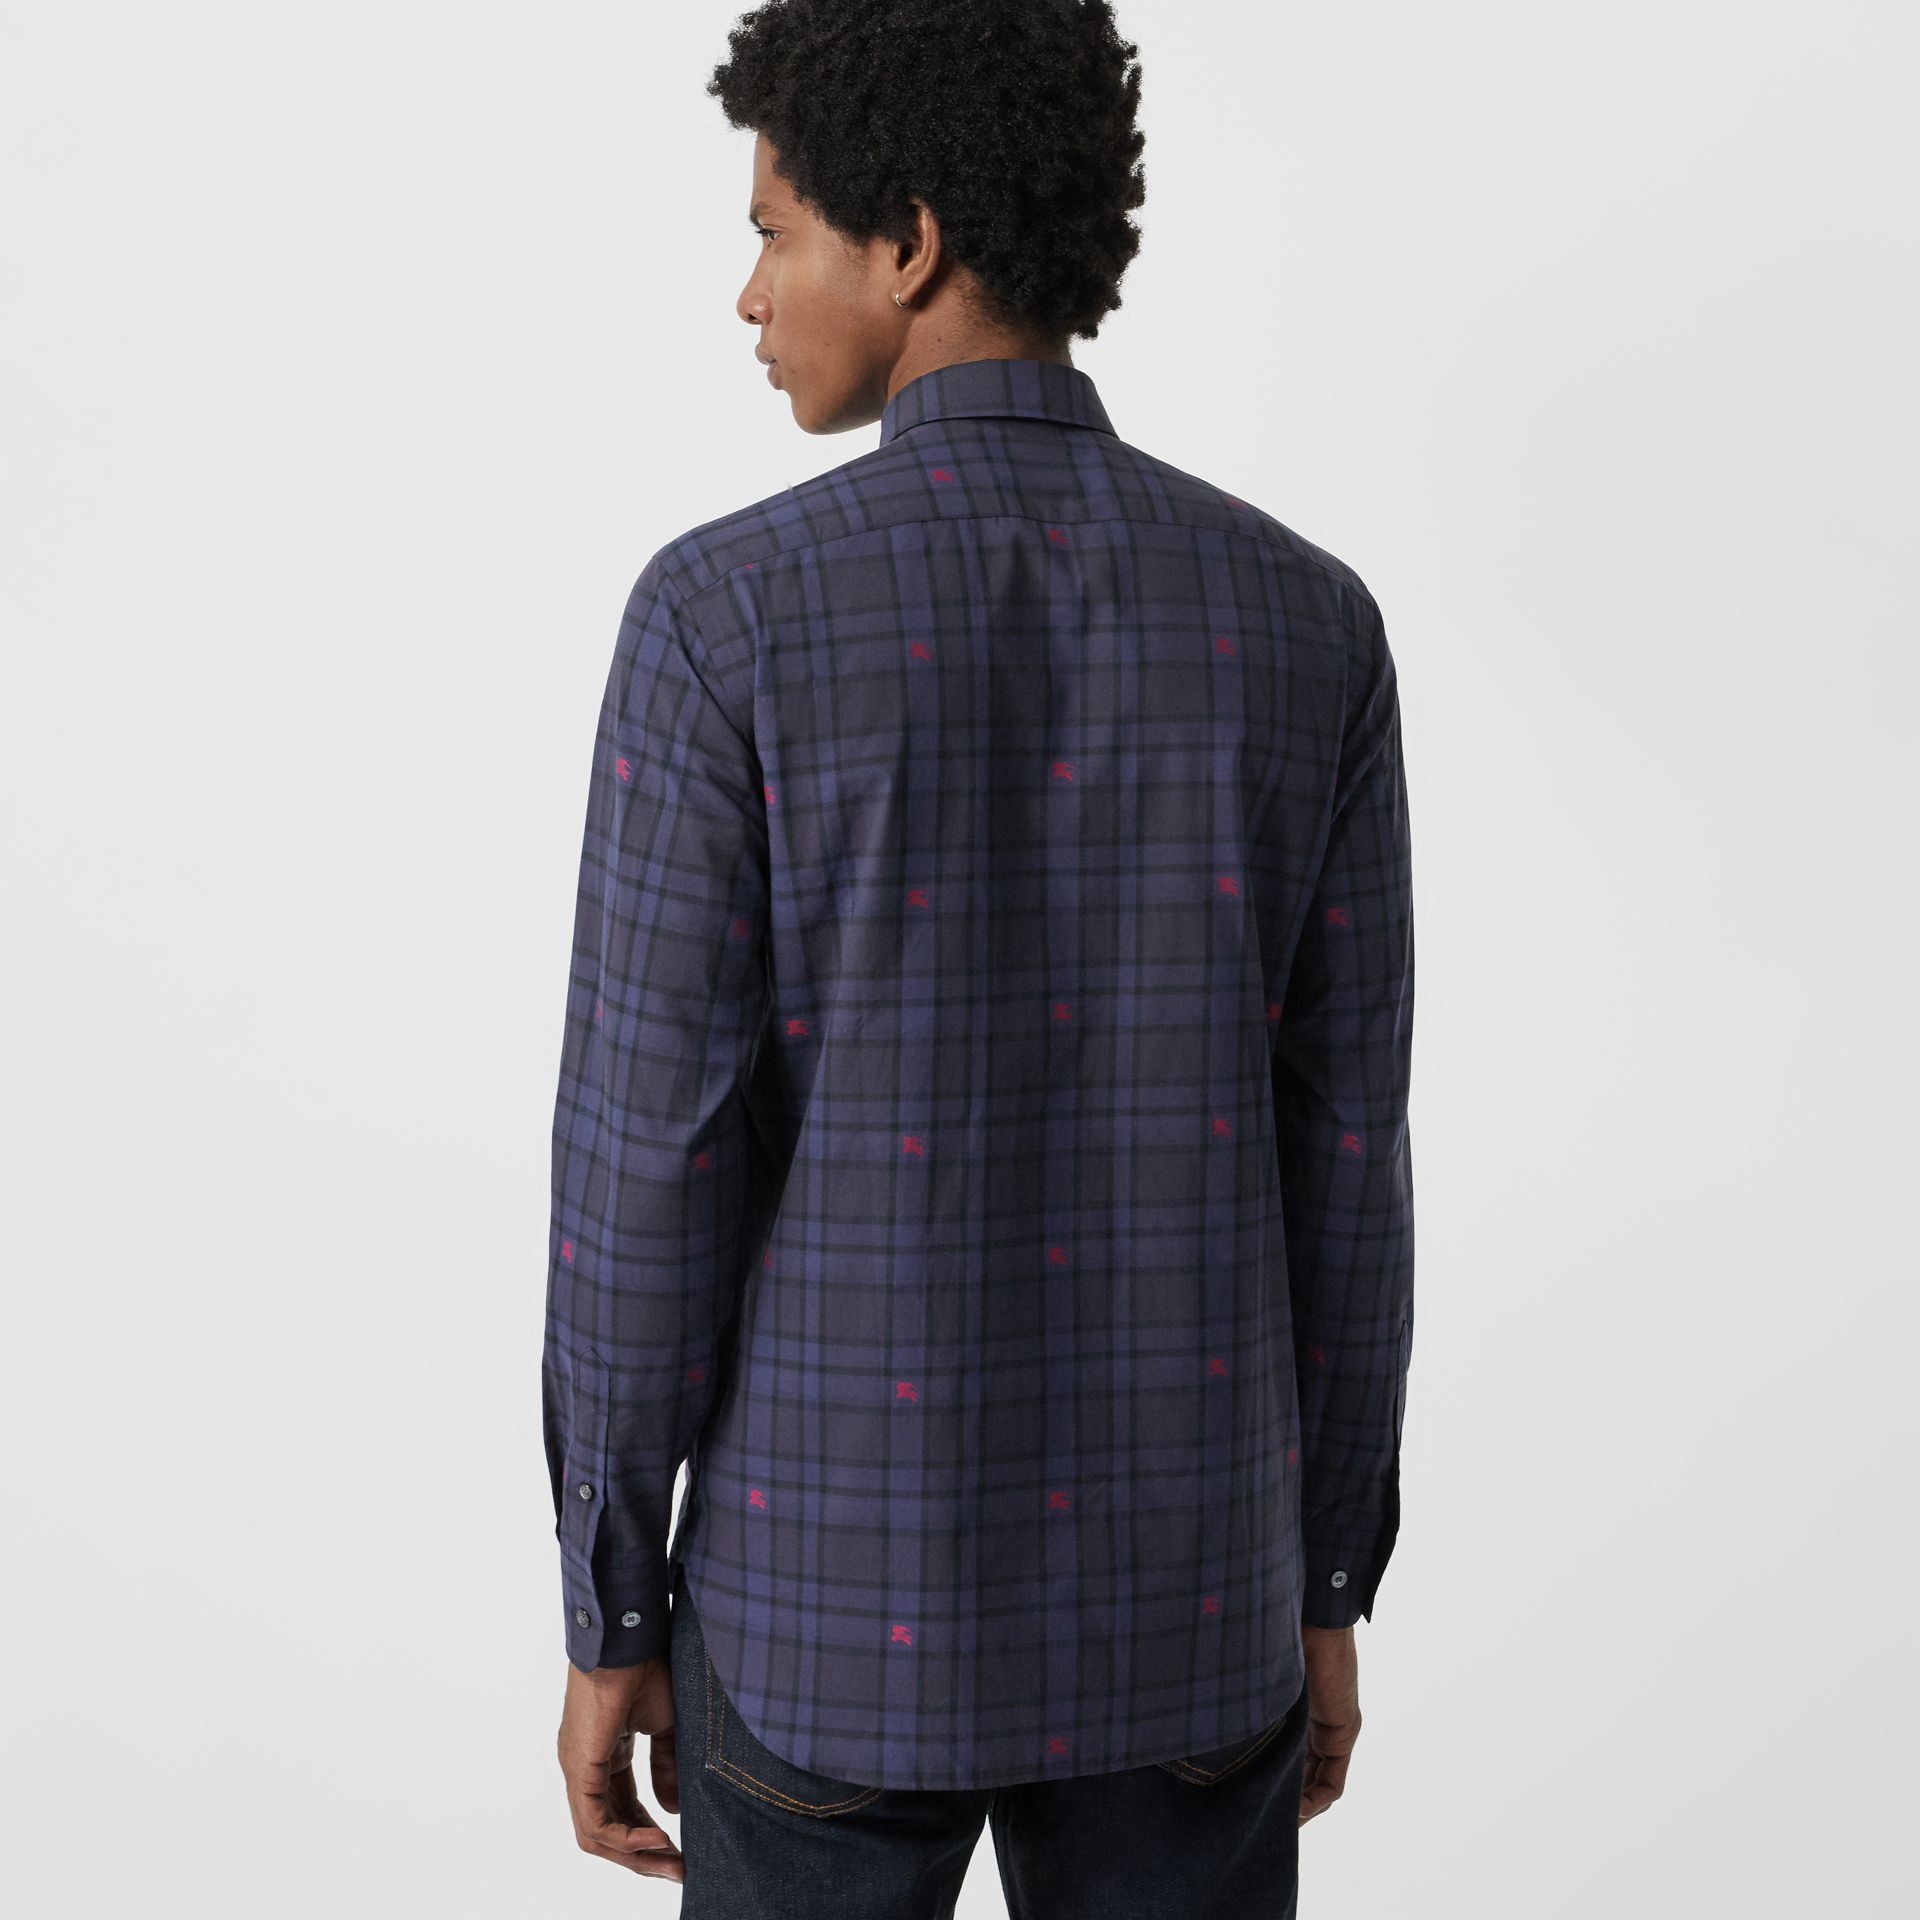 Equestrian Knight Check Cotton Shirt in Dark Indigo - Men | Burberry - gallery image 2